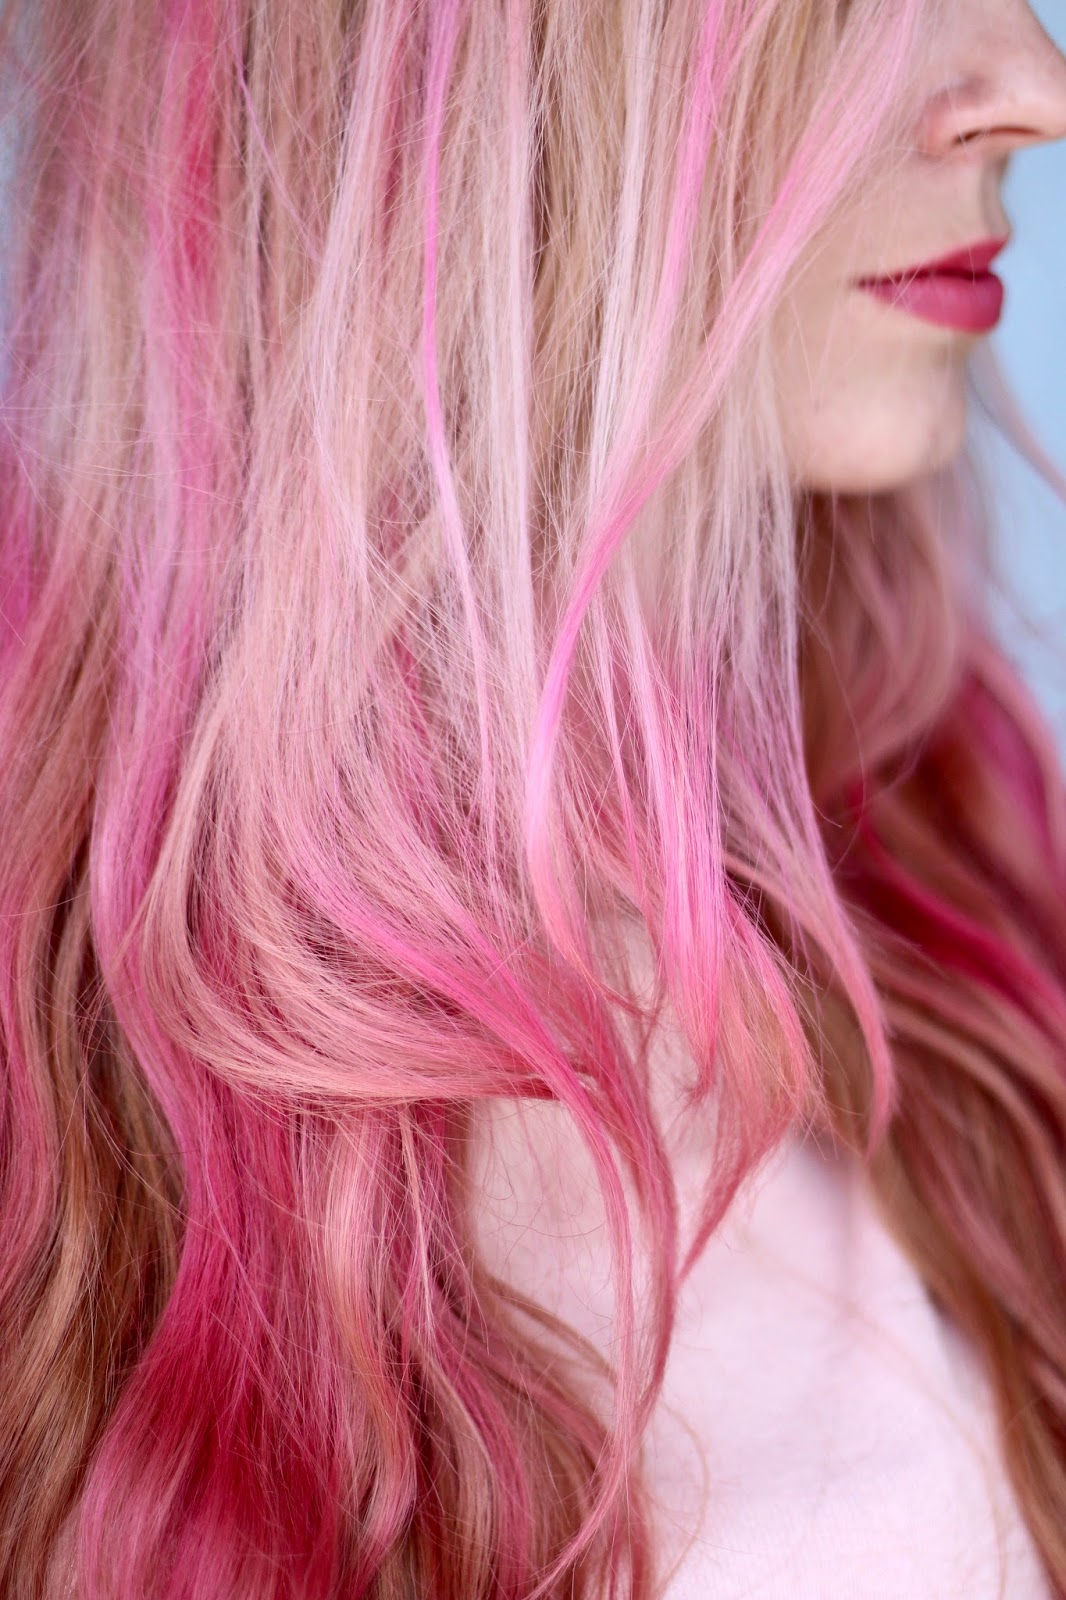 pink hair hairstyle